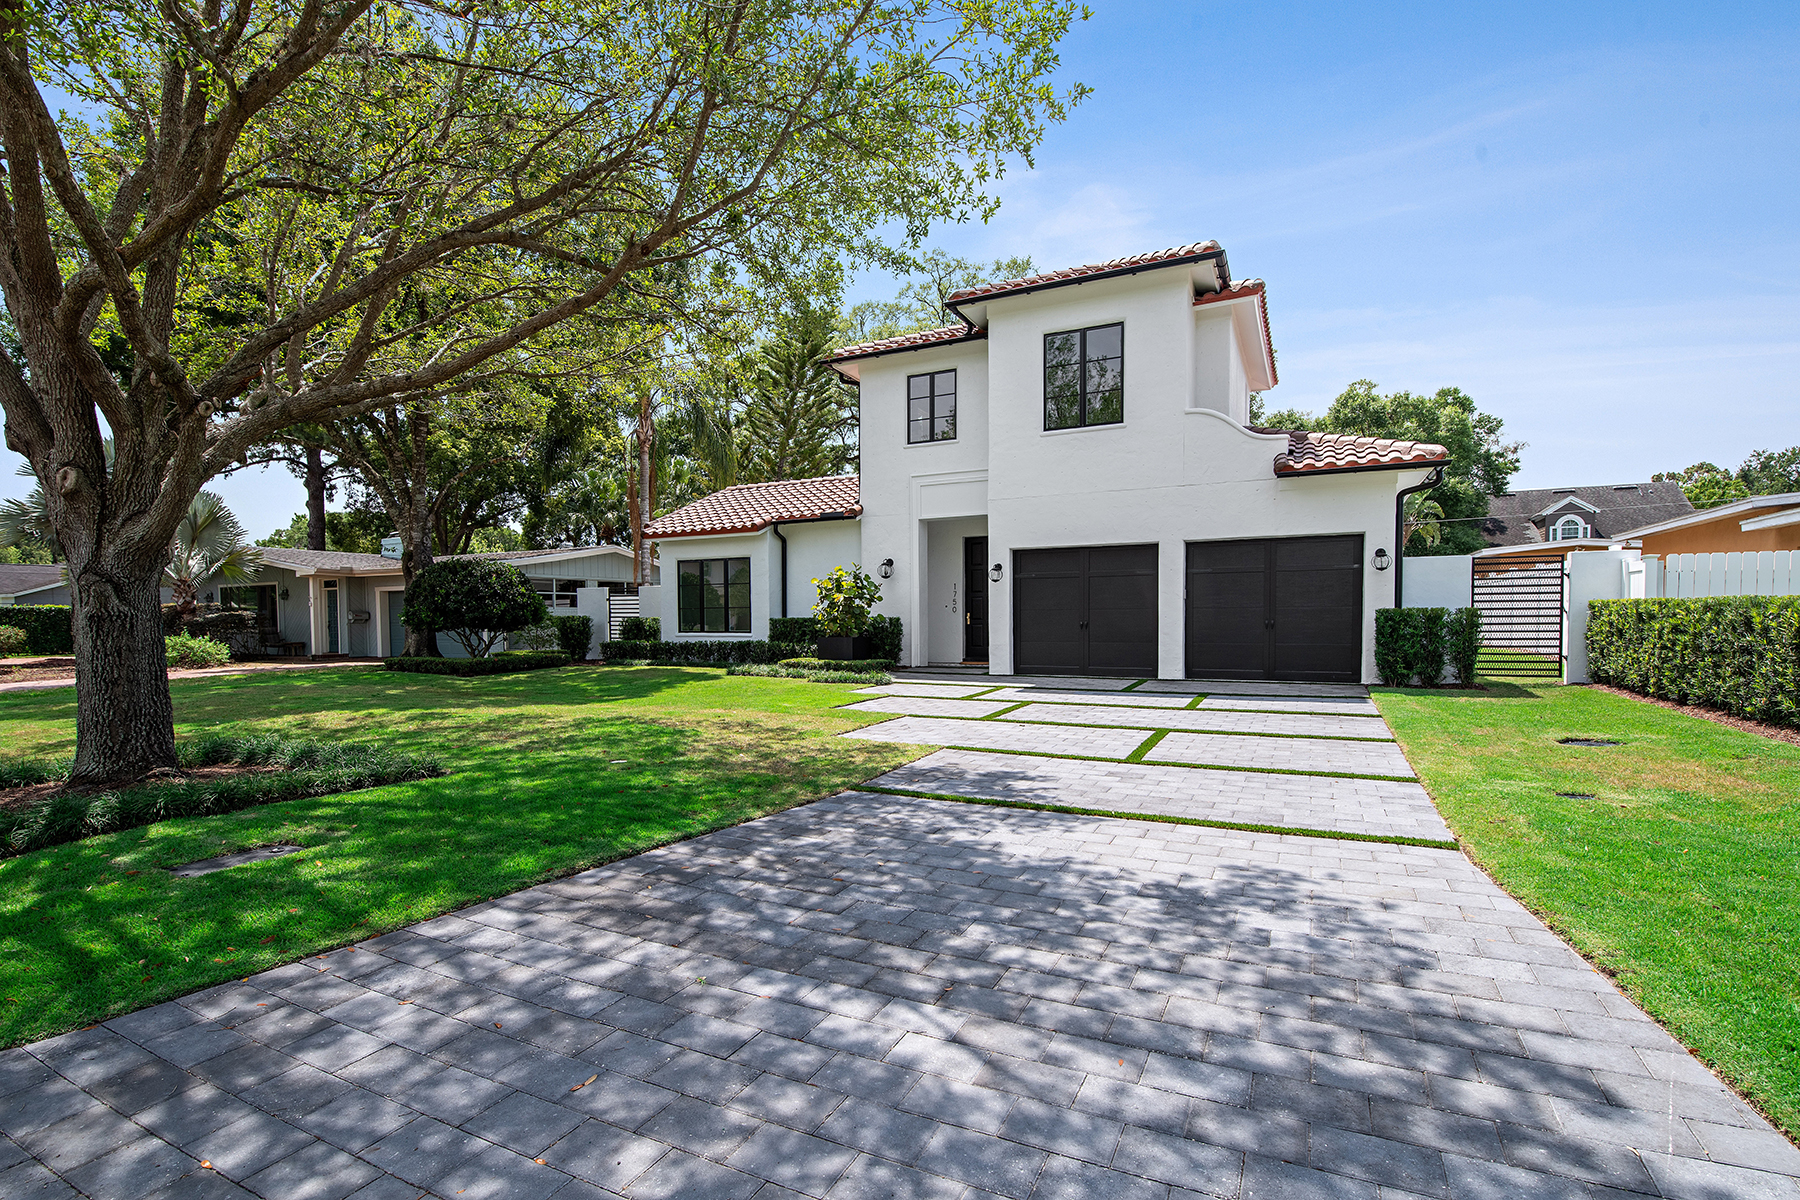 Single Family Homes for Sale at Winter Park 1750 Walnut Ave Winter Park, Florida 32789 United States